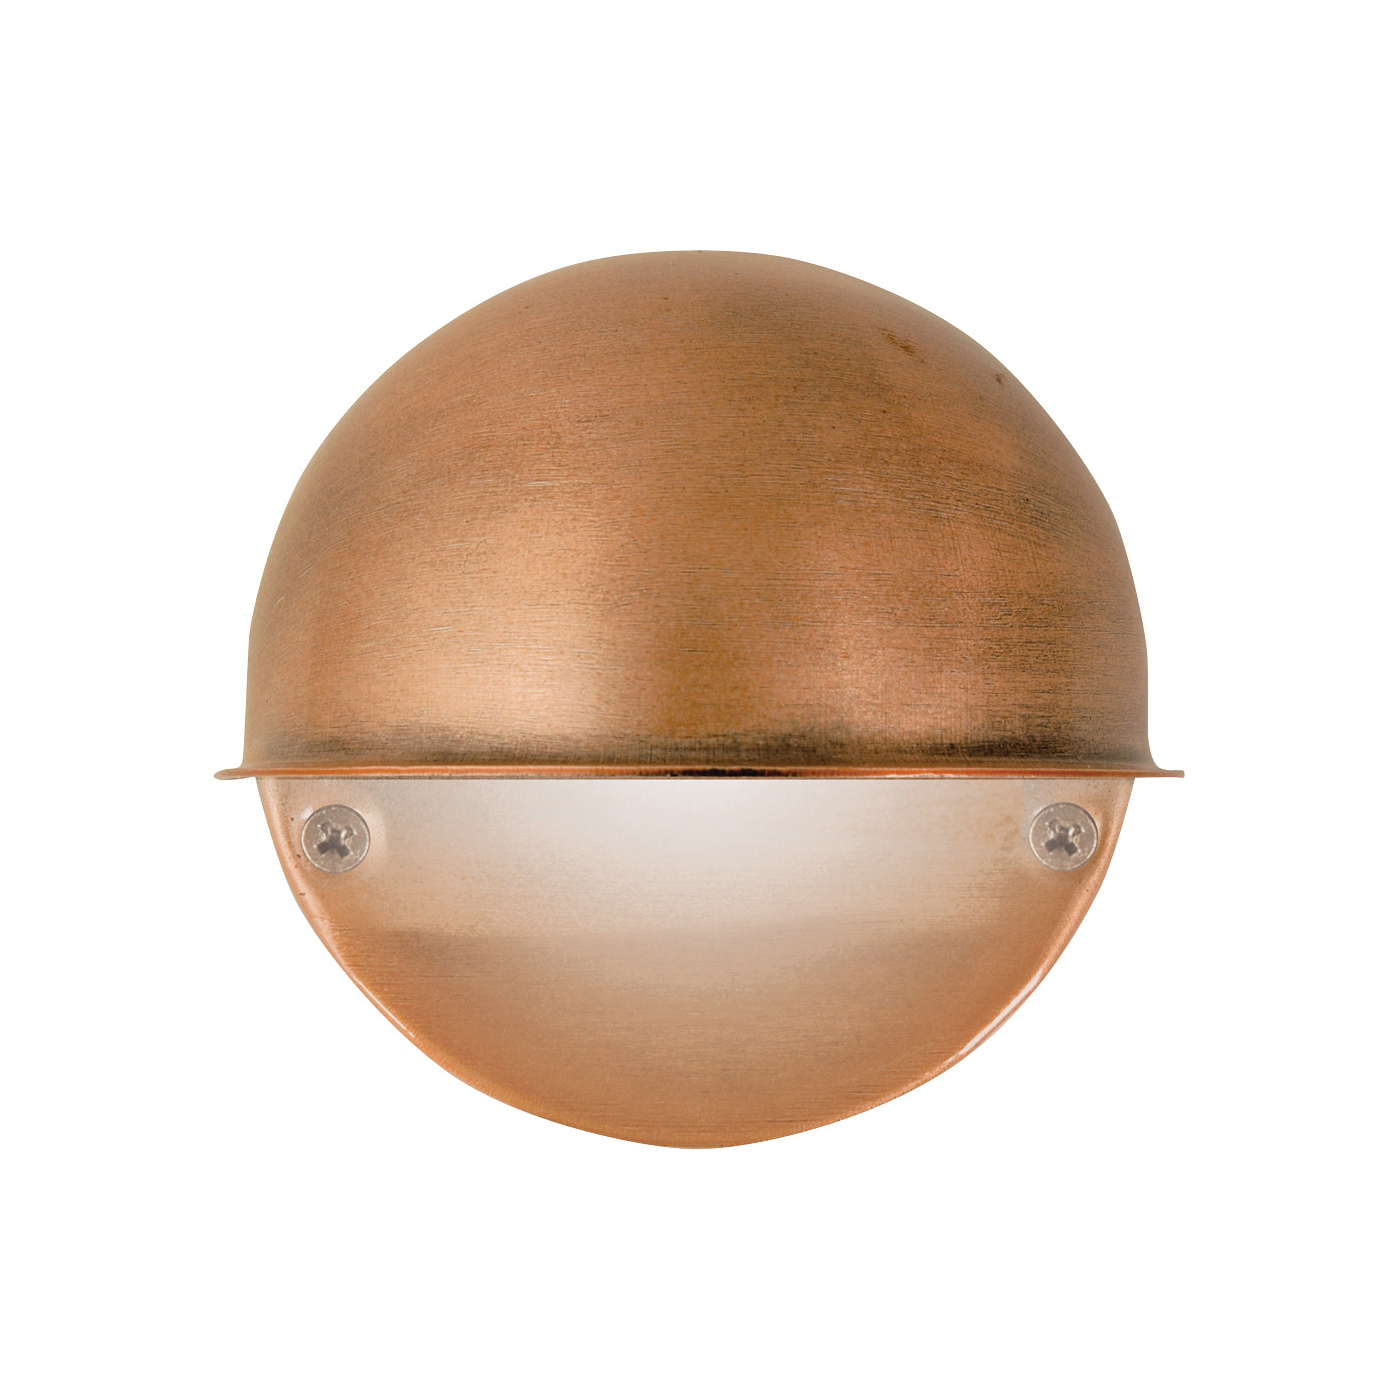 Picture of Moonrays 95734 Deck Light, 12 V, 7 W, 1-Lamp, Incandescent Lamp, Metal Fixture, Antique Copper Fixture